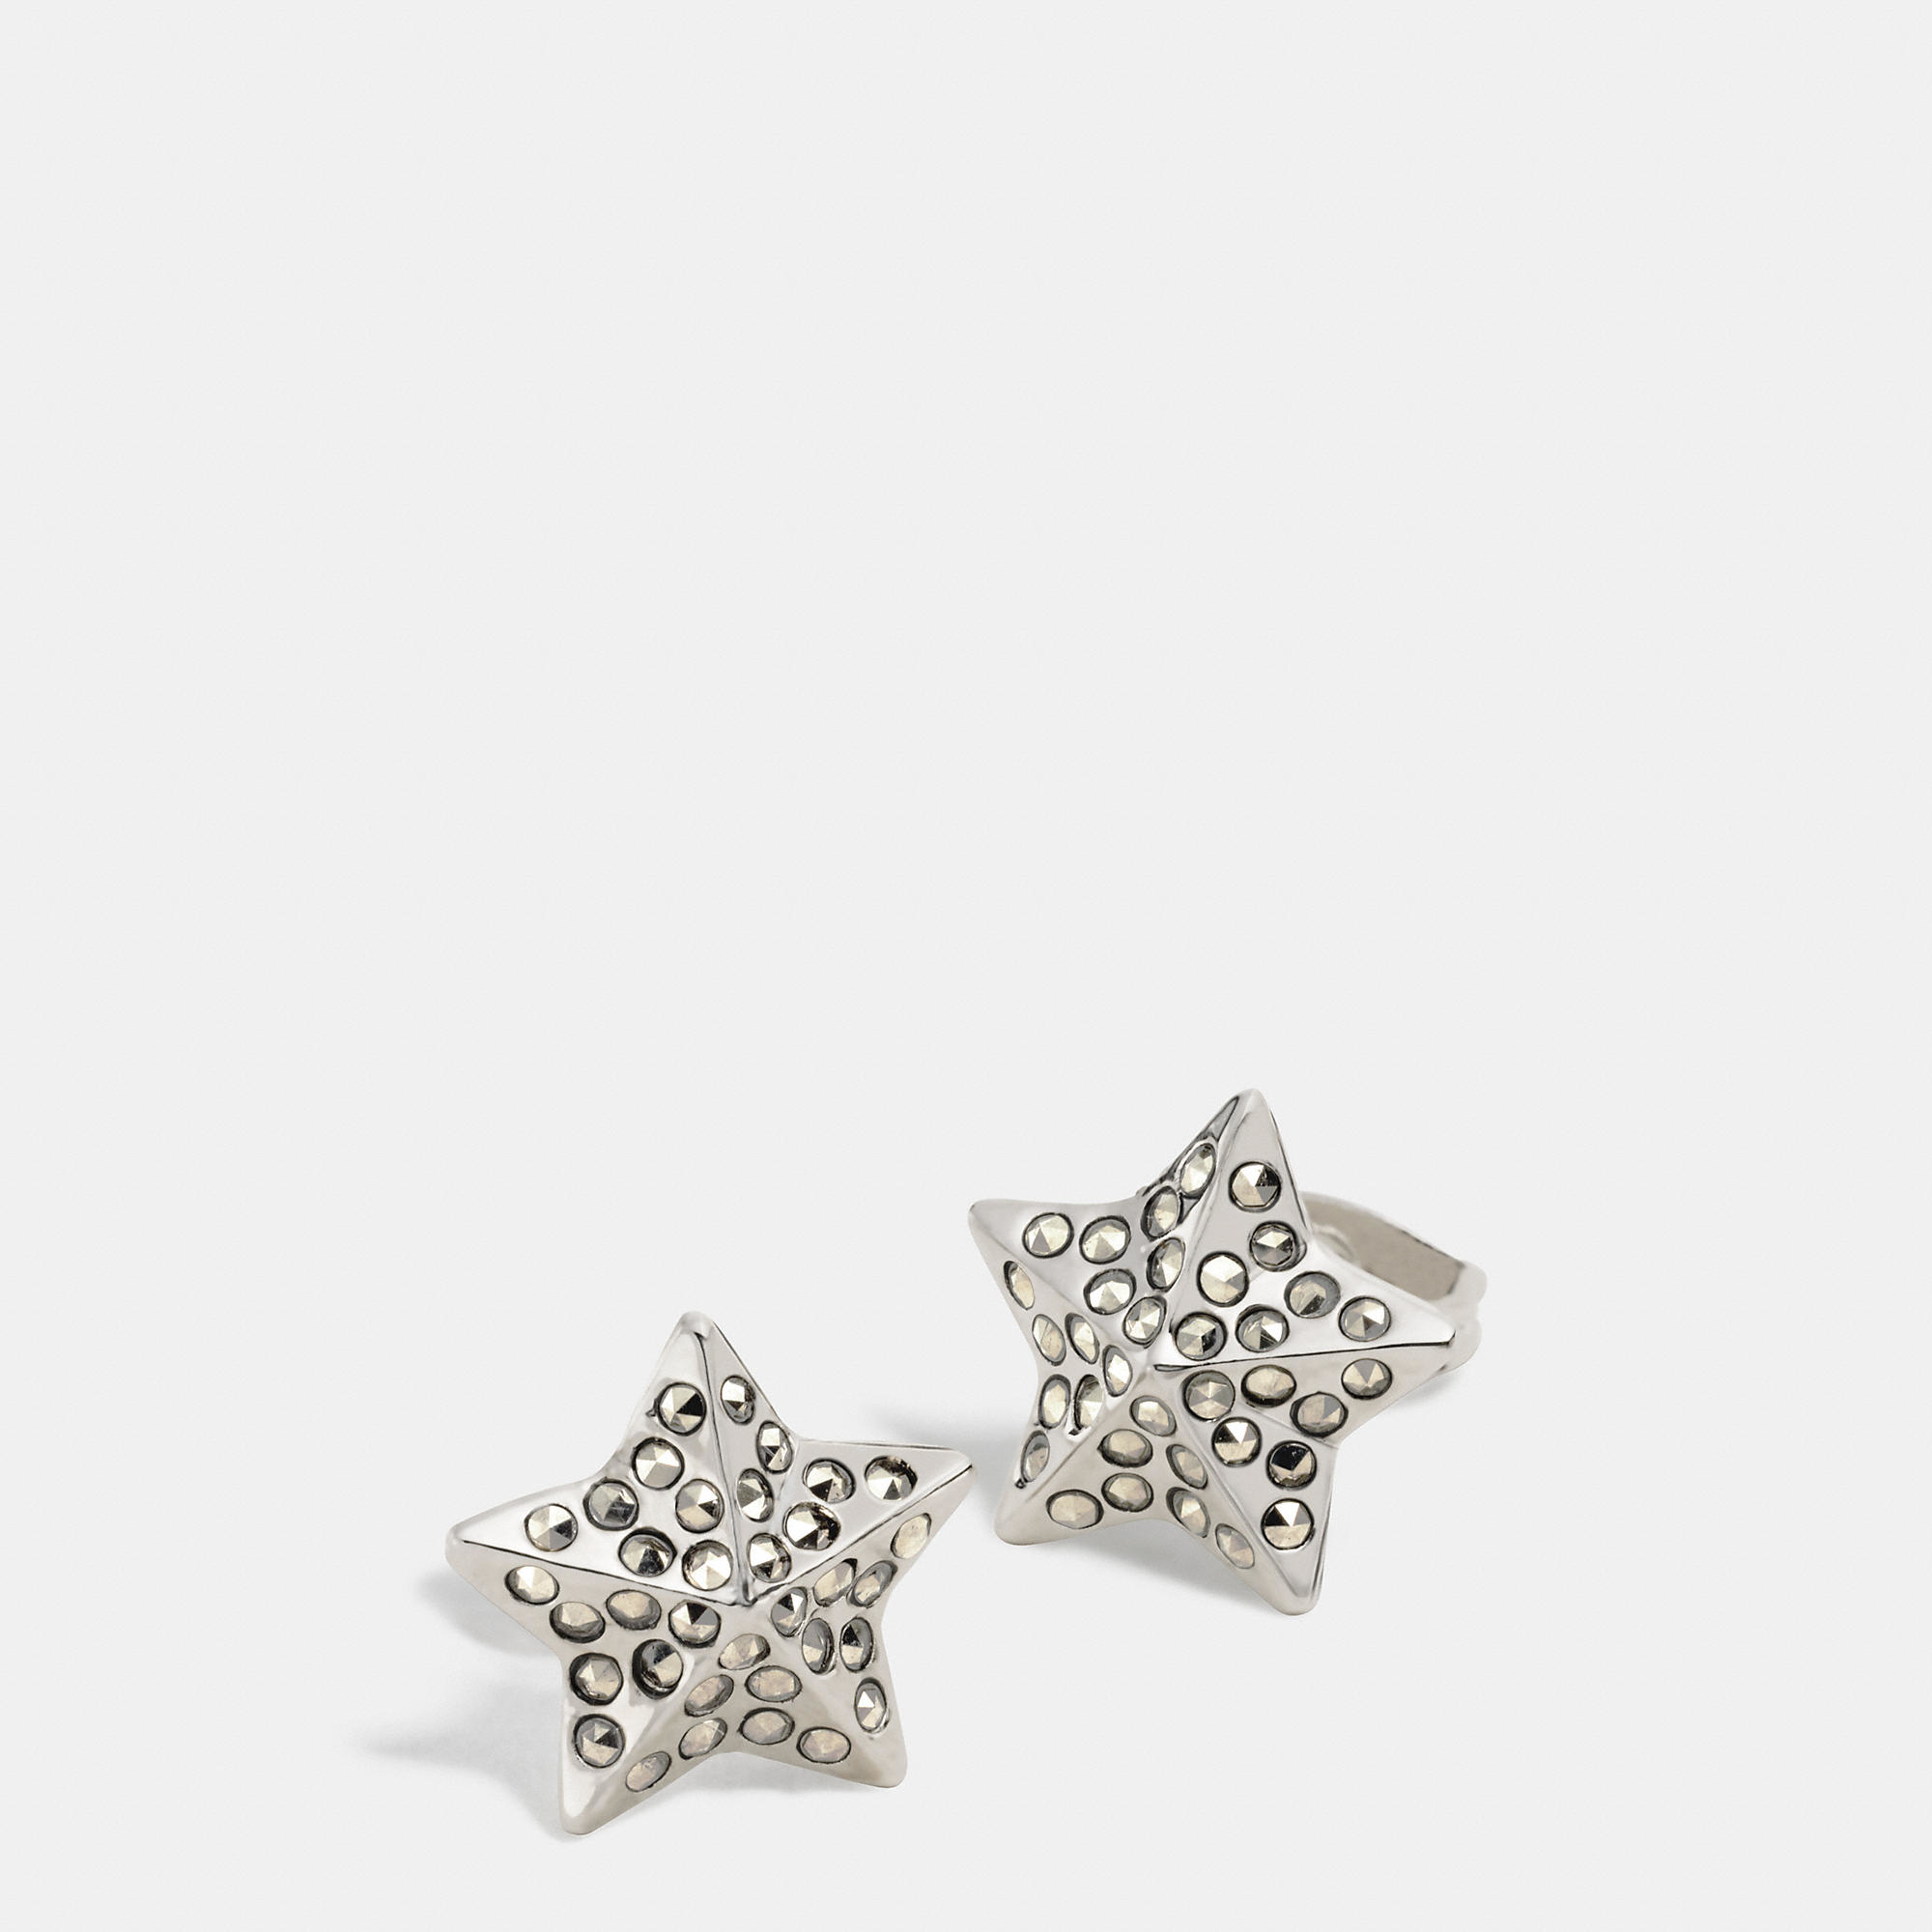 coach stud earrings lyst coach pave metal stud earrings in metallic 500